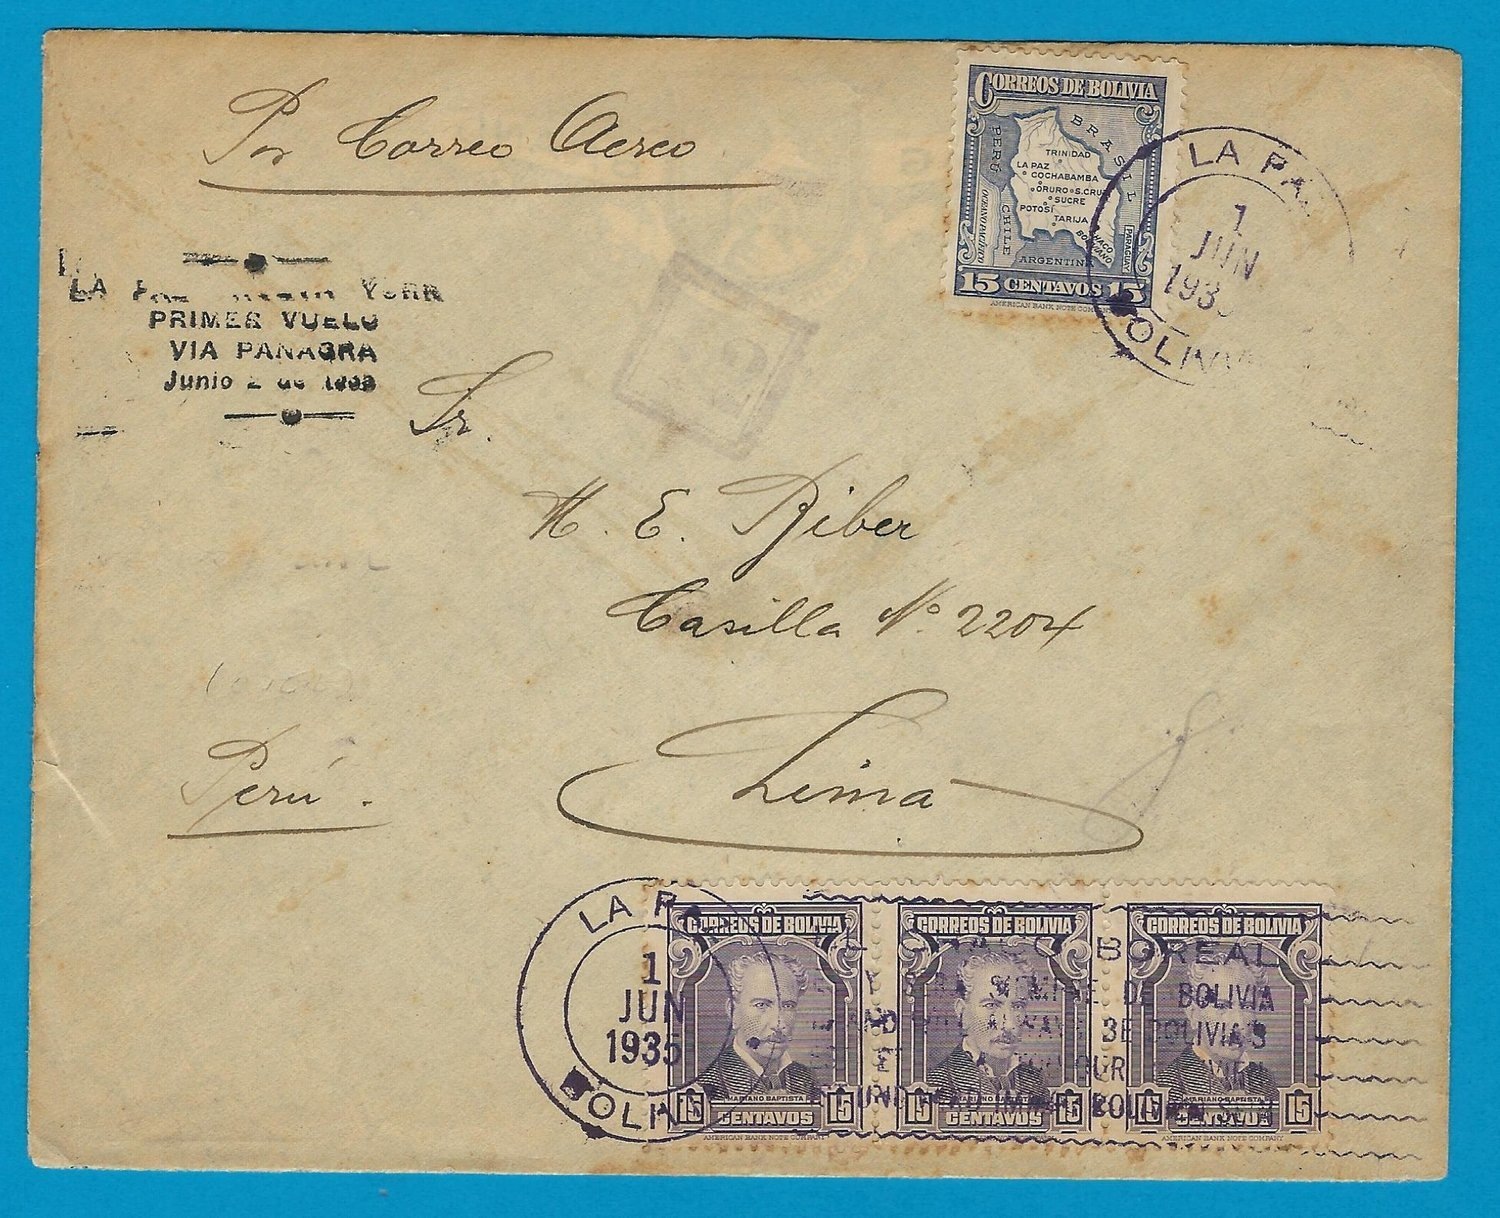 BOLIVIA airmail cover 1935 La Paz to Lima with military censor